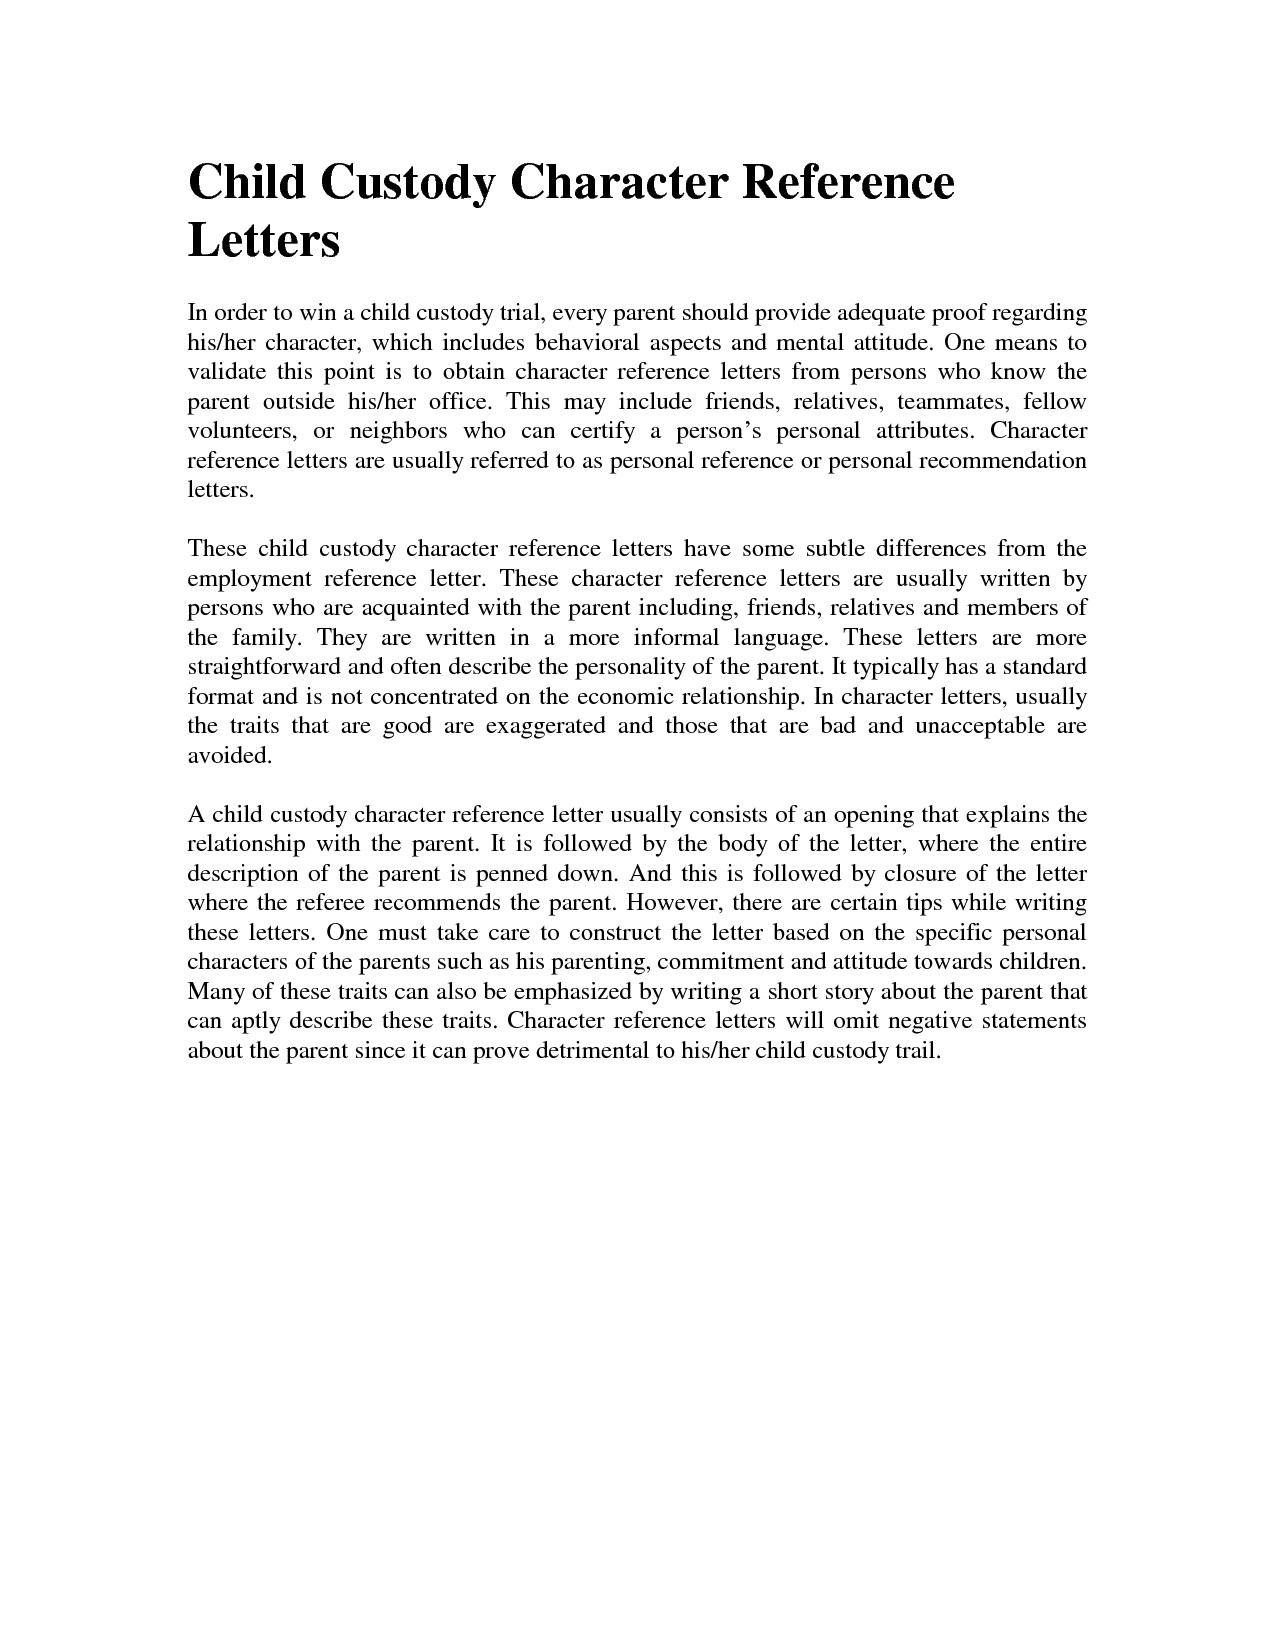 Child Custody Letter Template - Sample Character Reference for Court New Sample Character Reference